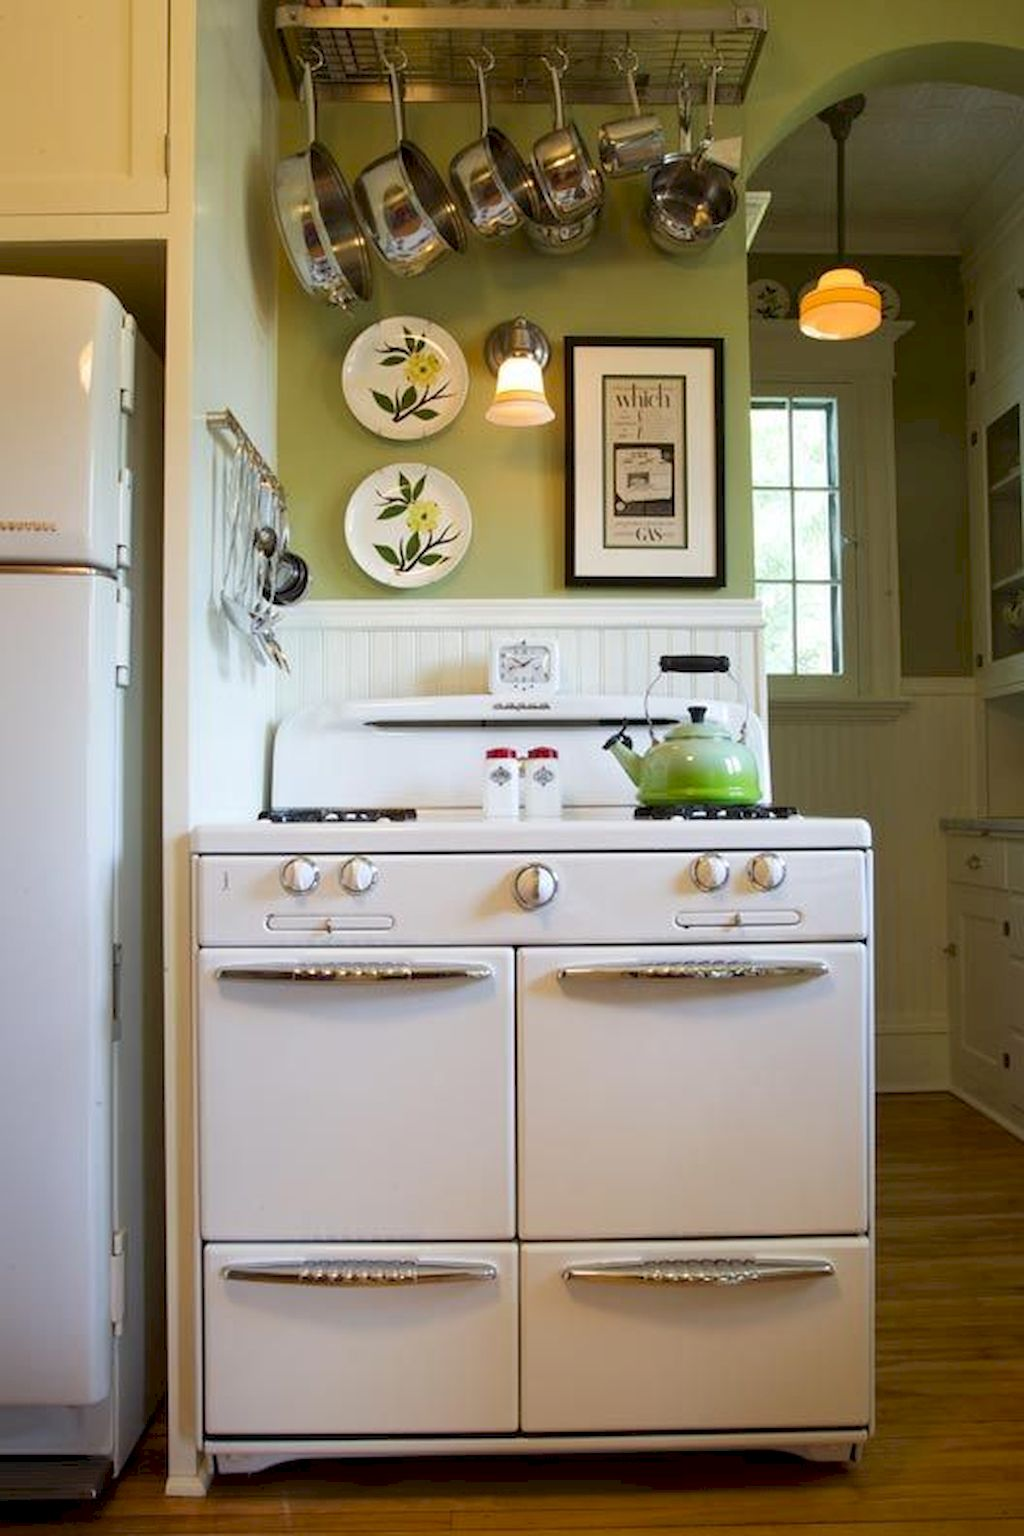 Kitchen Plan And Design For Small Room (4)